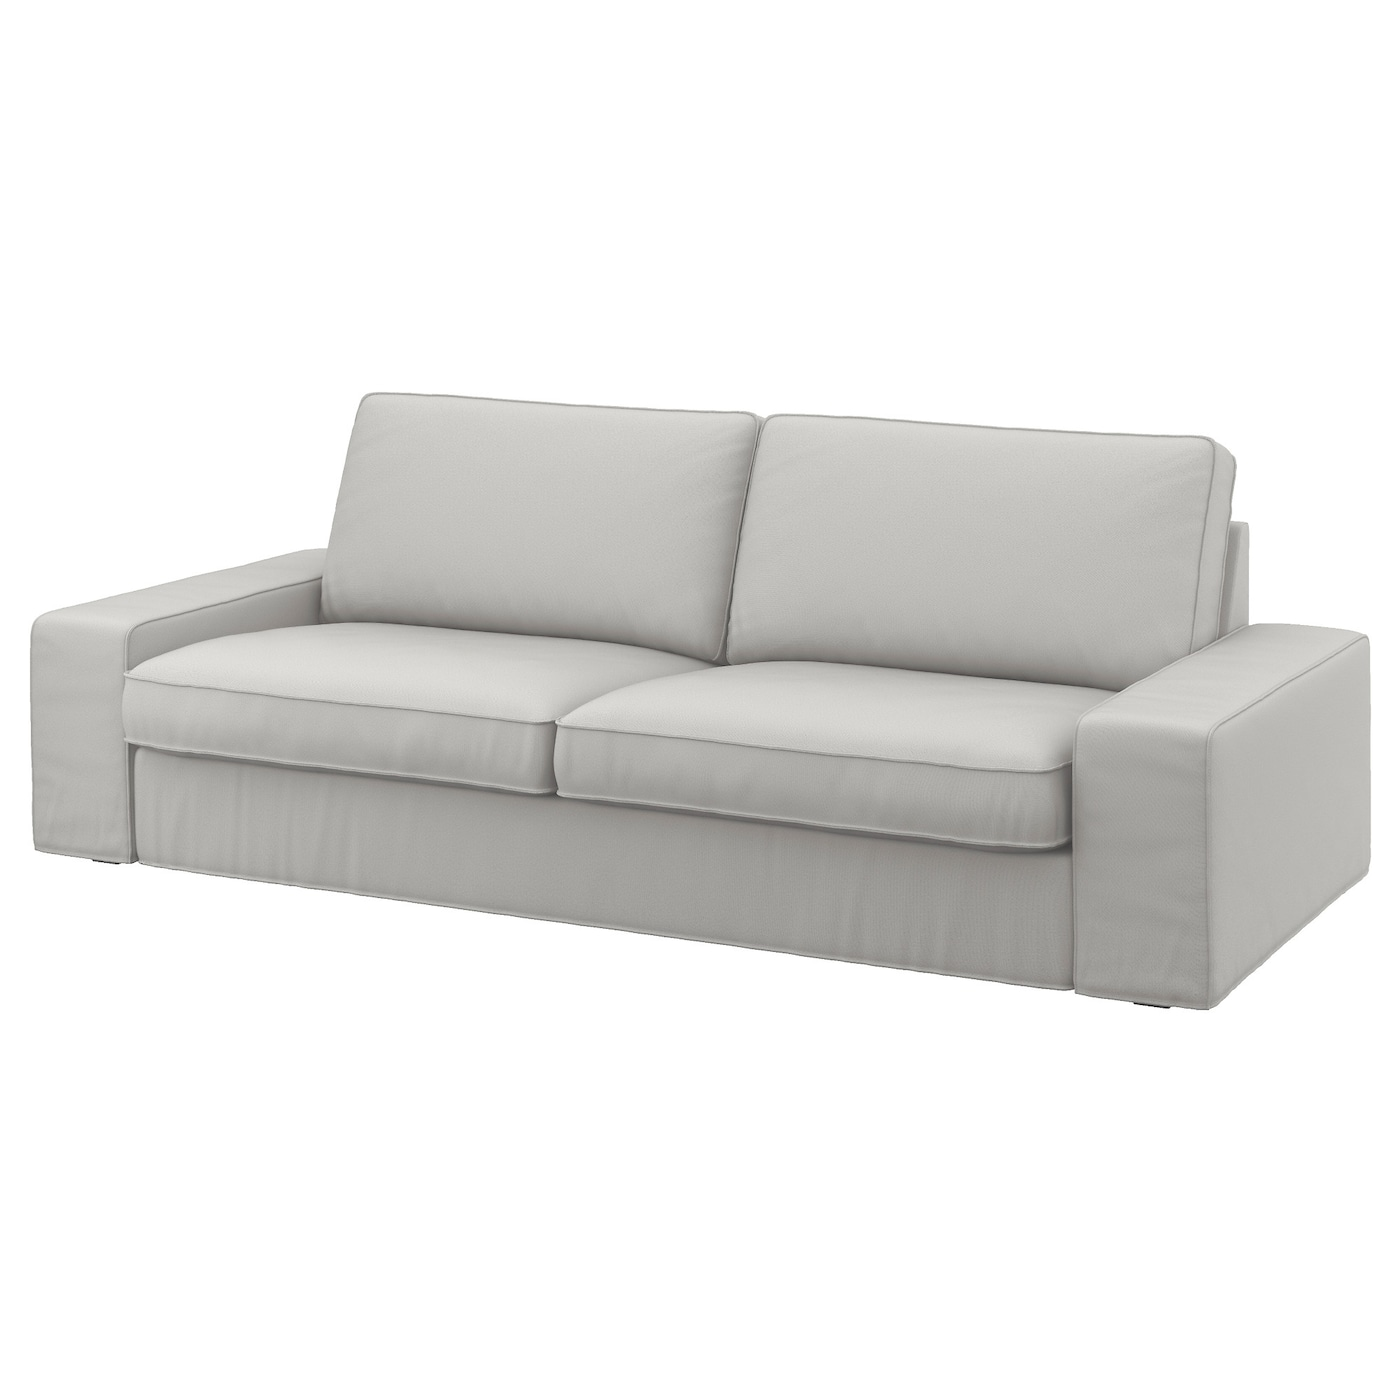 kivik three seat sofa ramna light grey ikea. Black Bedroom Furniture Sets. Home Design Ideas